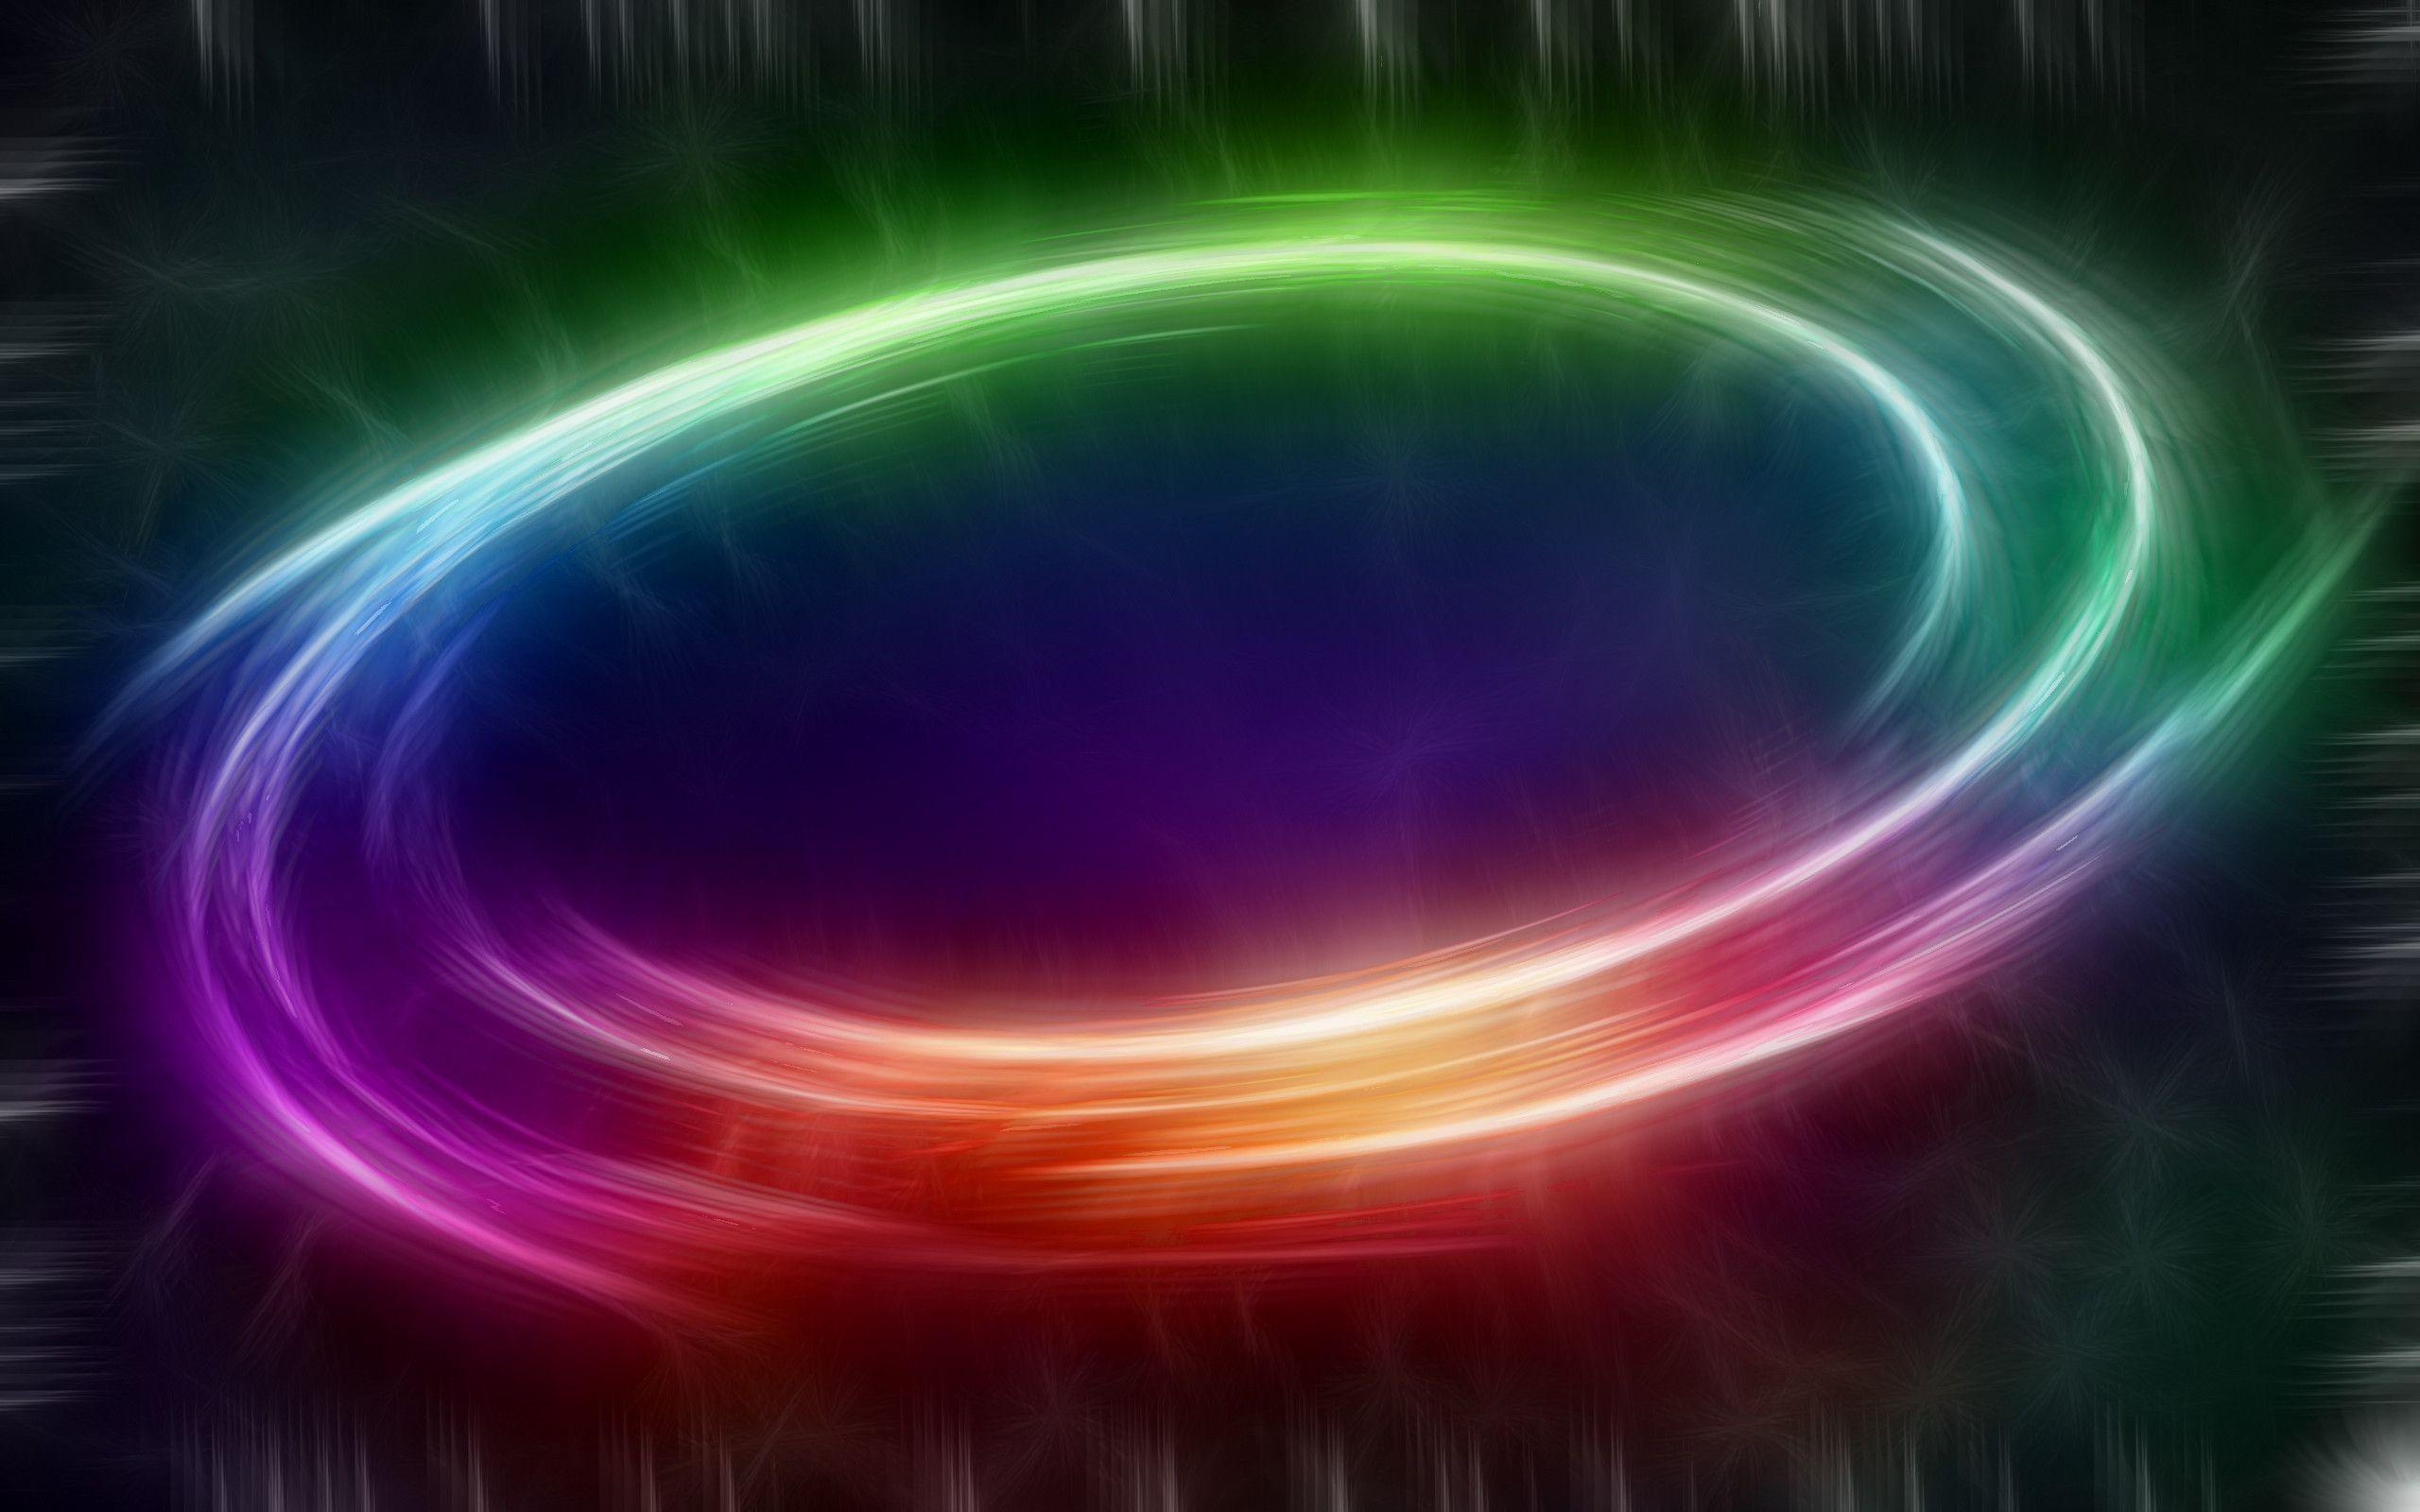 Cool Neon Background Images Hq Free Download 14410 Seek Gif